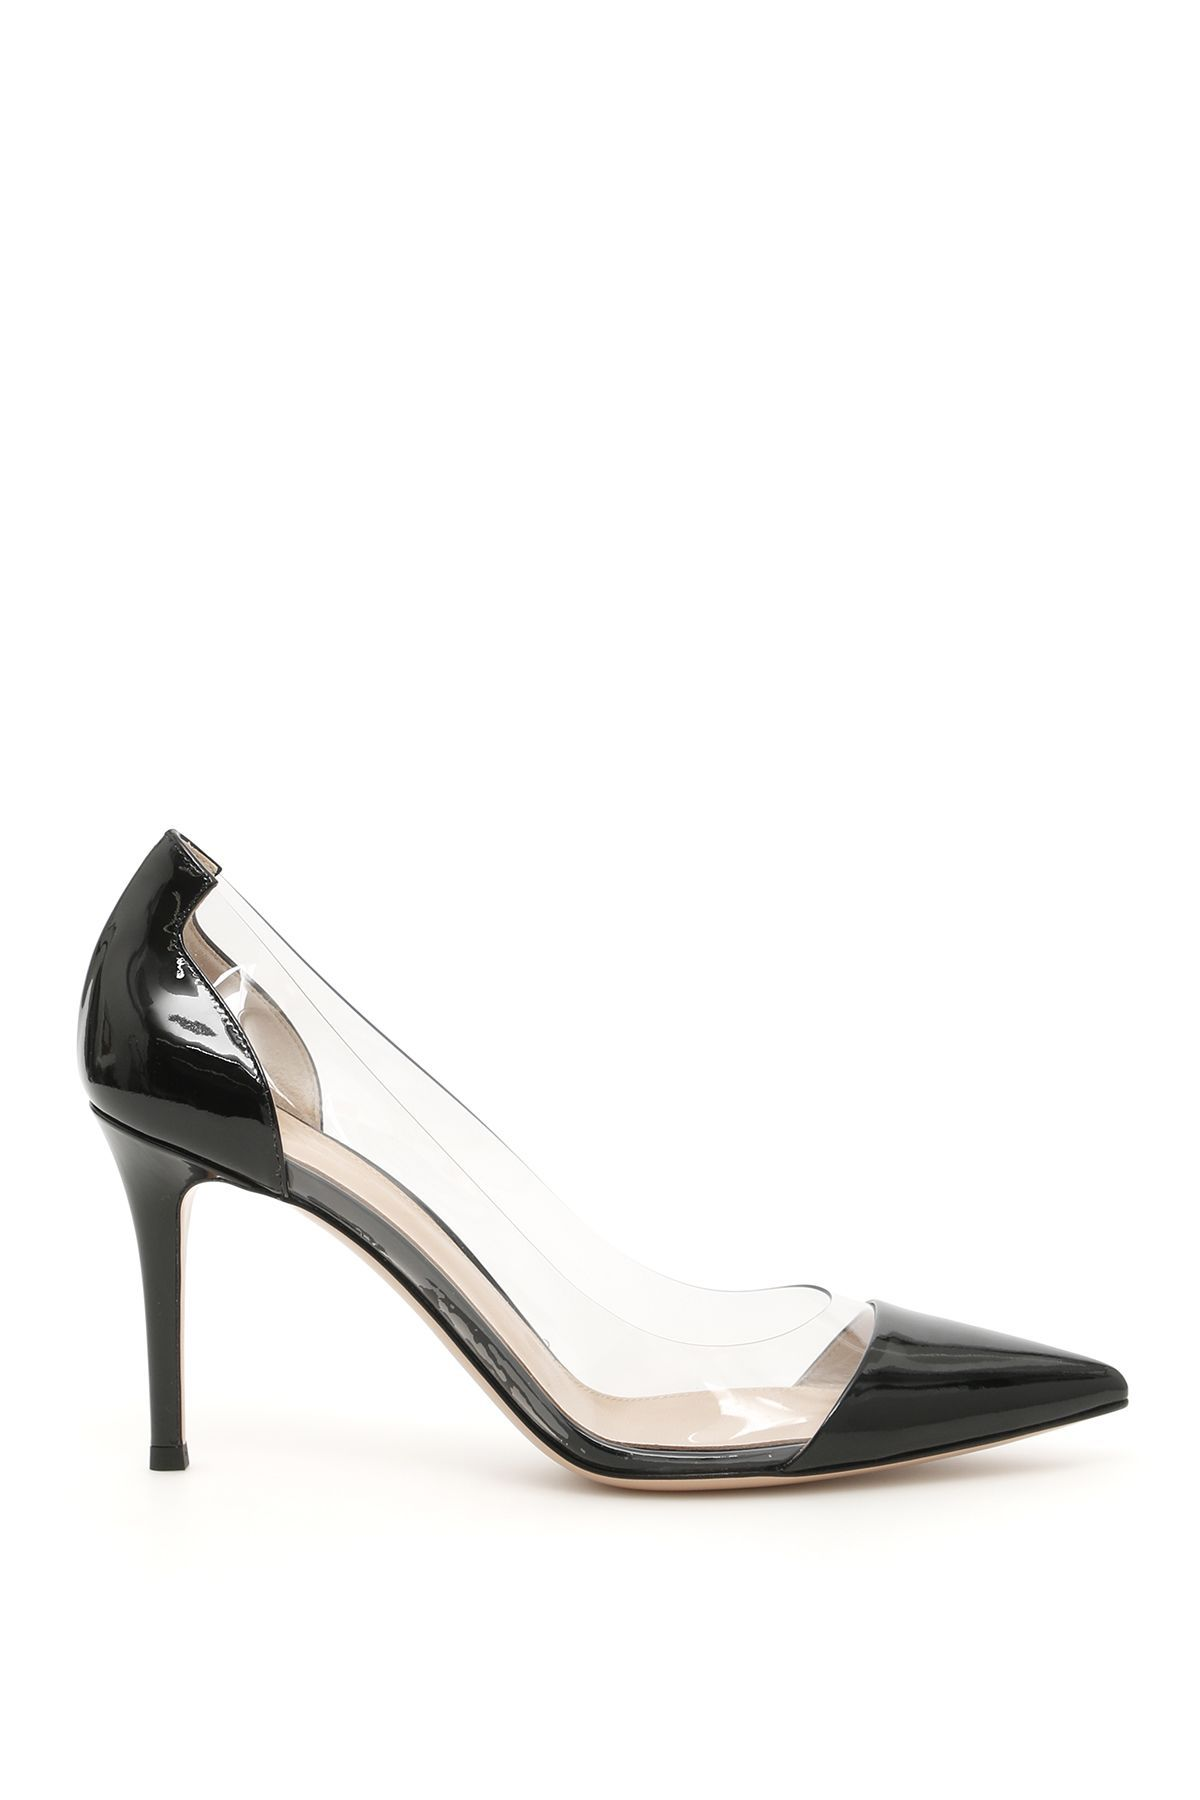 GIANVITO ROSSI  Gianvito Rossi Plexi 85 Pumps Shoes Highheeled shoes